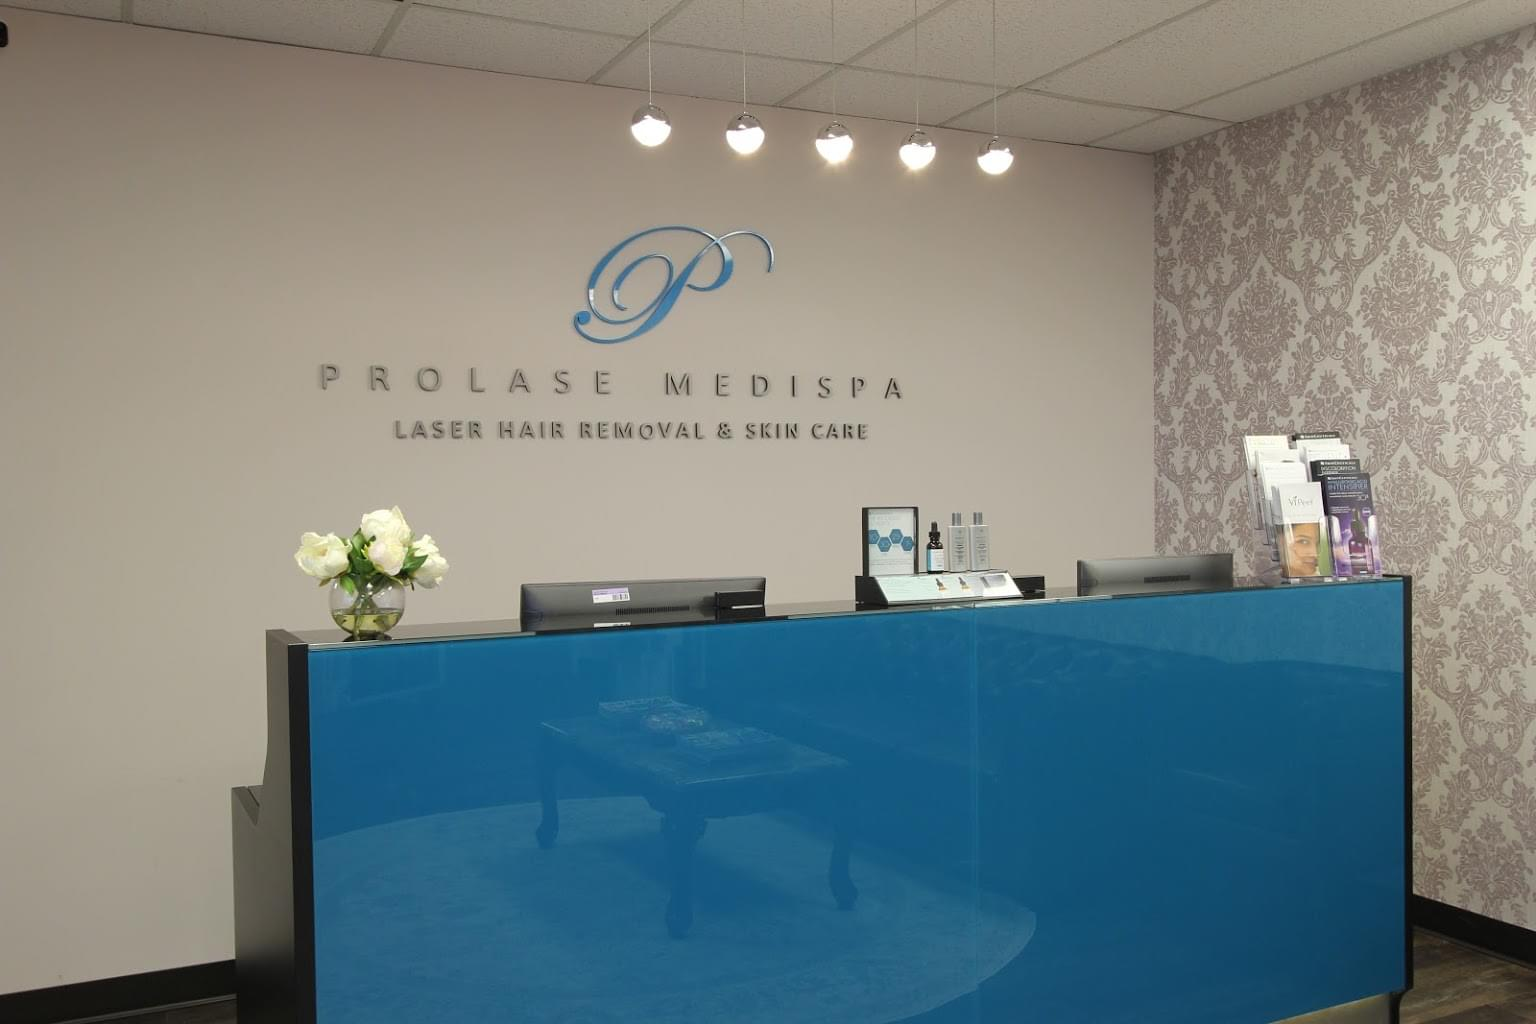 Prolase Medispa medical spa in Fairfax, VA